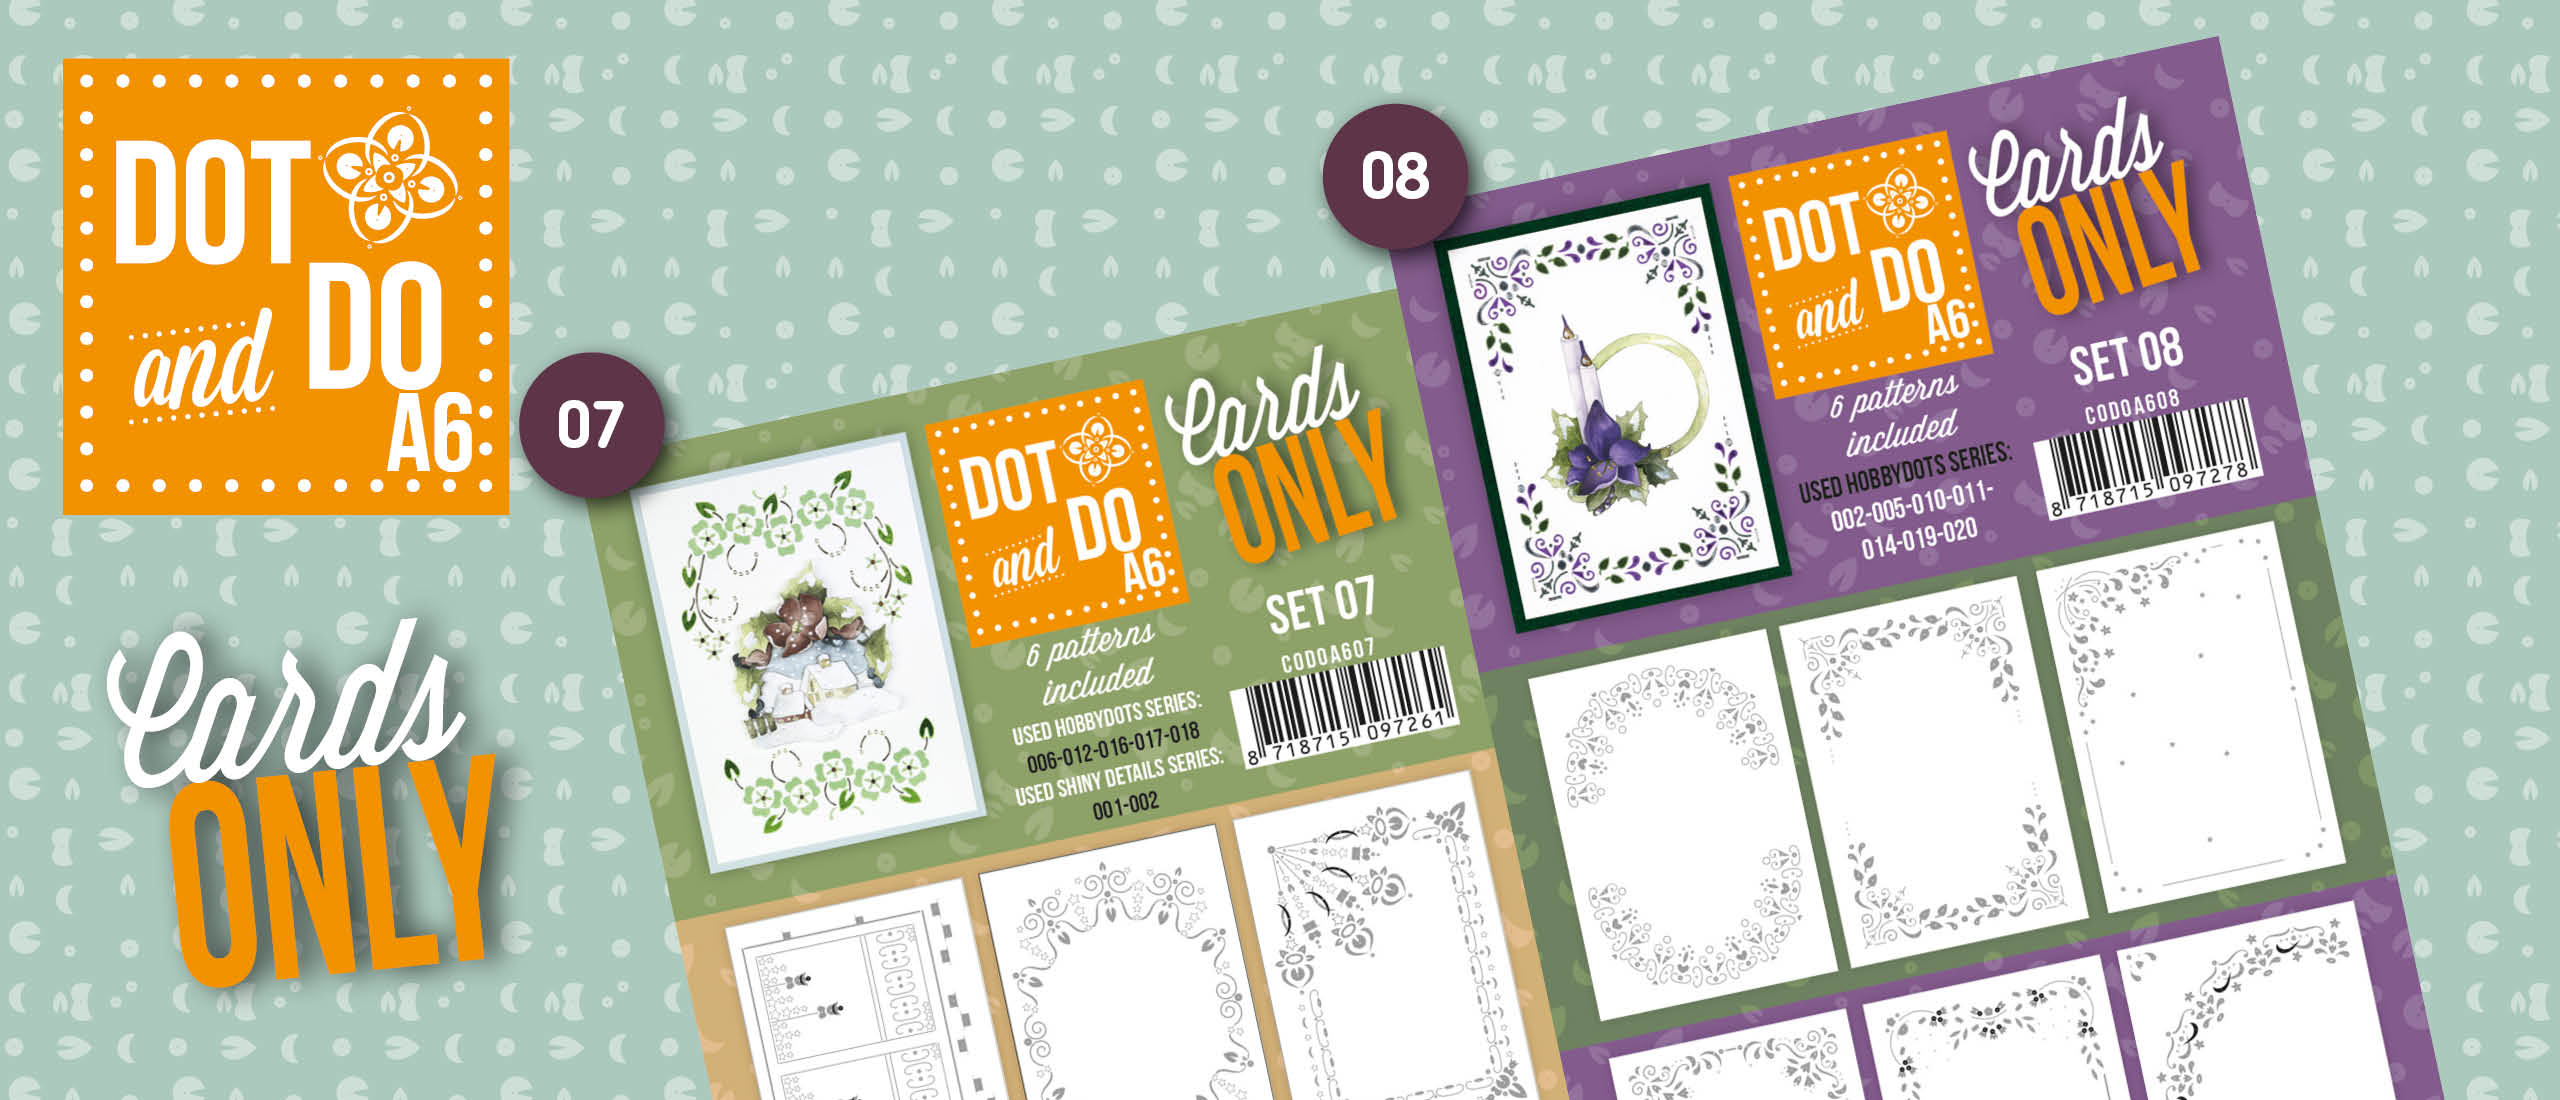 Dot and Do - Cards Only - 7 en 8